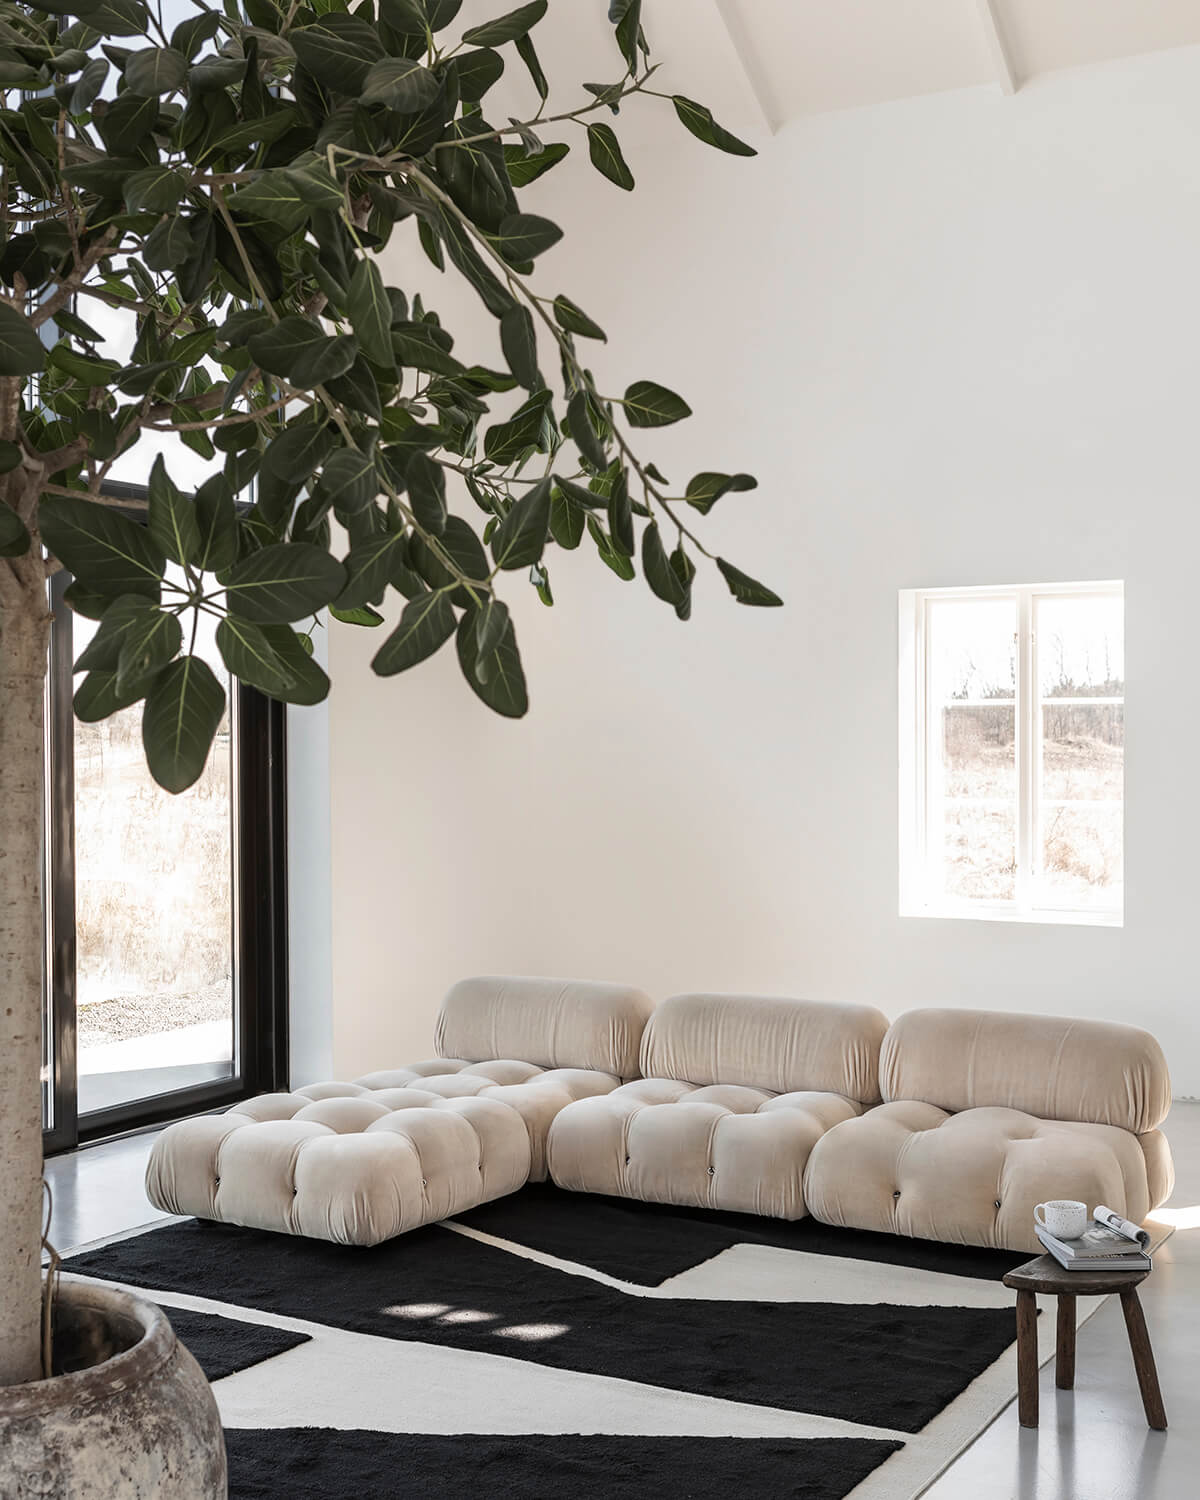 Untitled 1 in a white living room setting with a potted tree in the foreground.